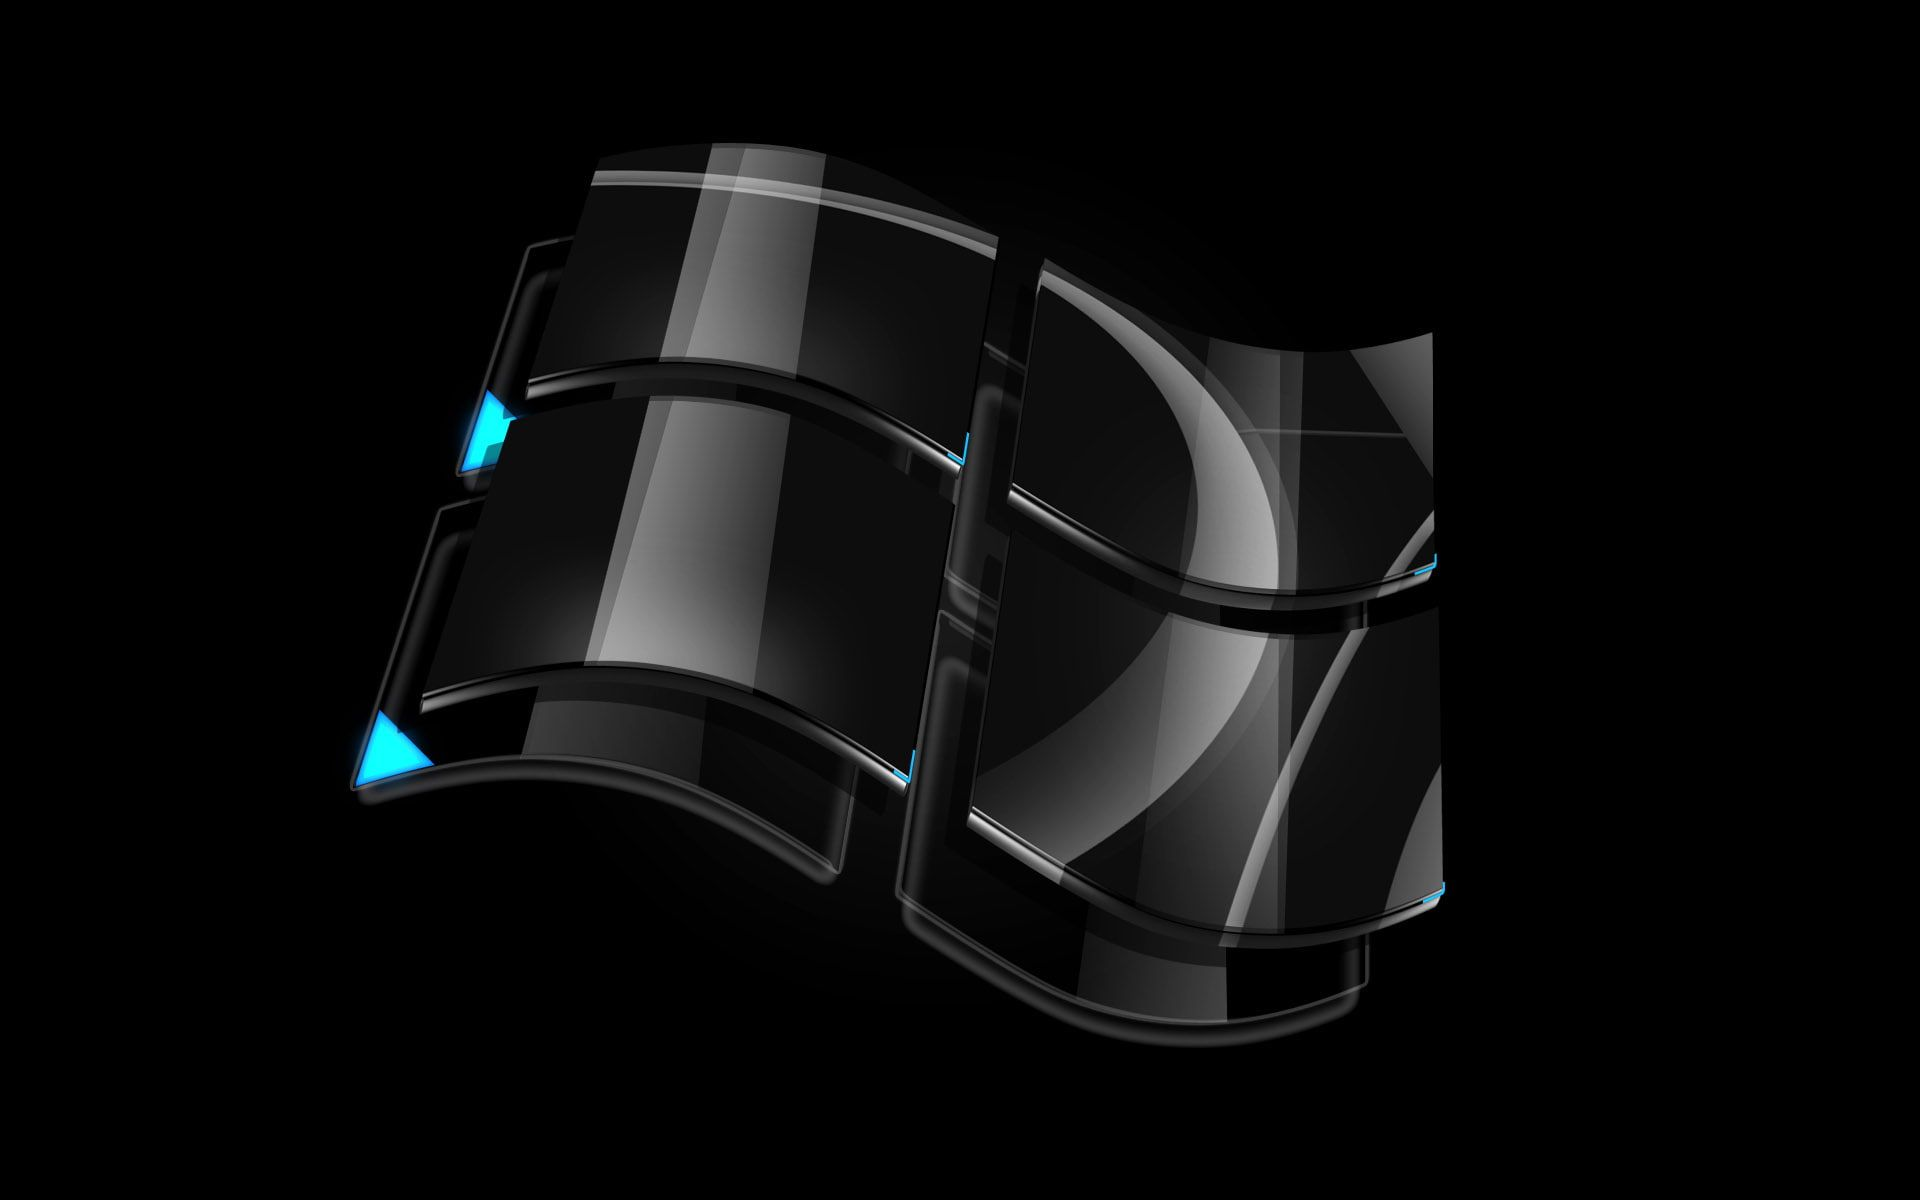 Windows 3d 1080p Wallpaper Hdwallpaper Desktop In 2020 Windows Wallpaper Windows Vista Wallpaper Black Hd Wallpaper